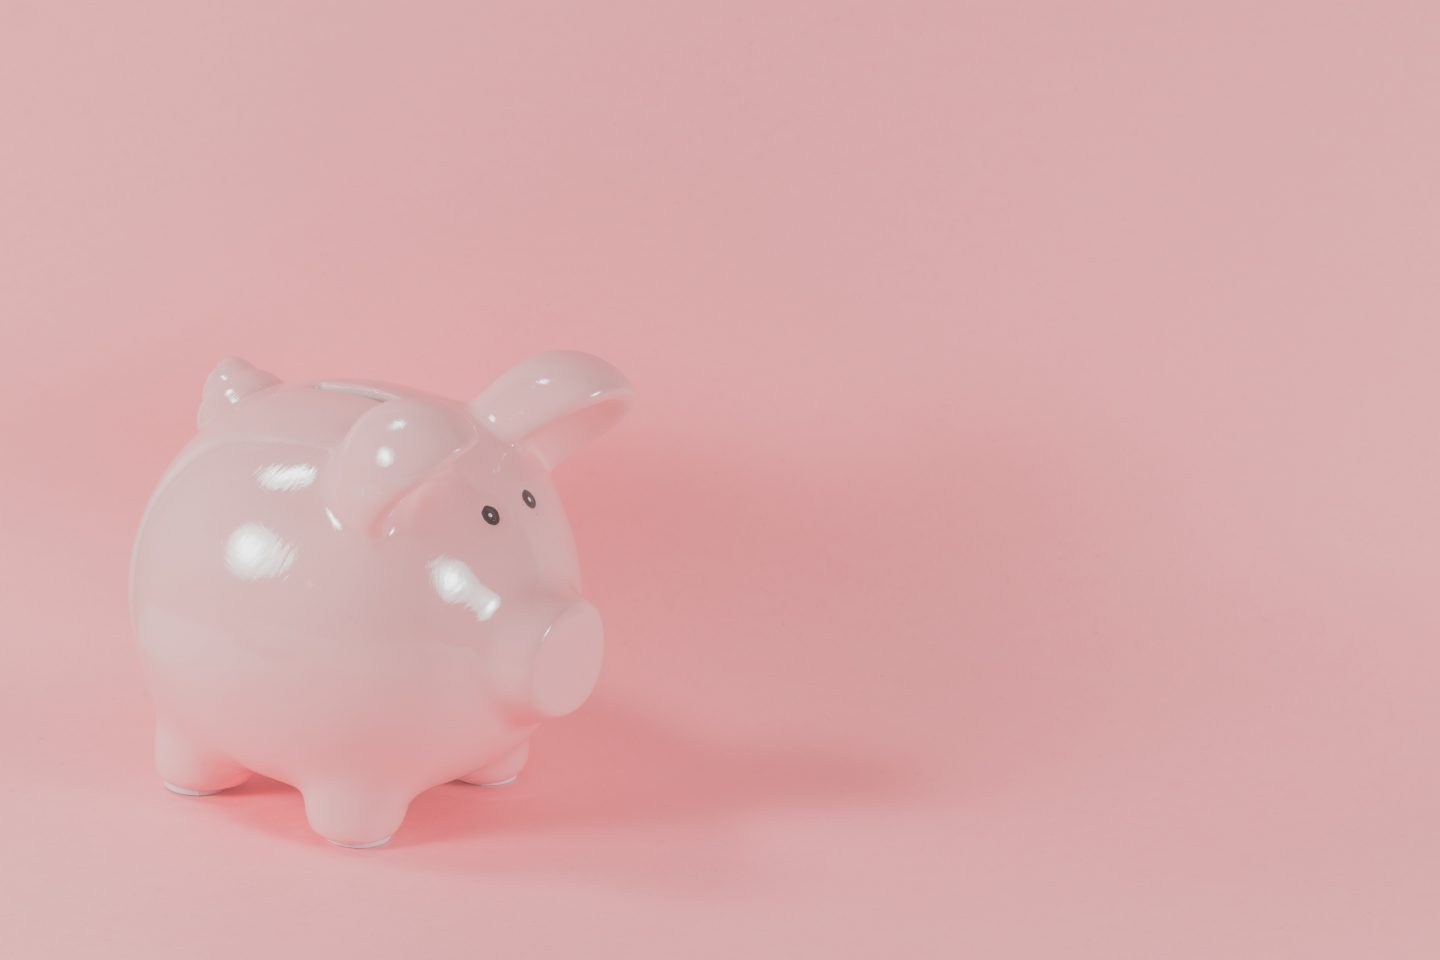 pink ceramic pig coin bank